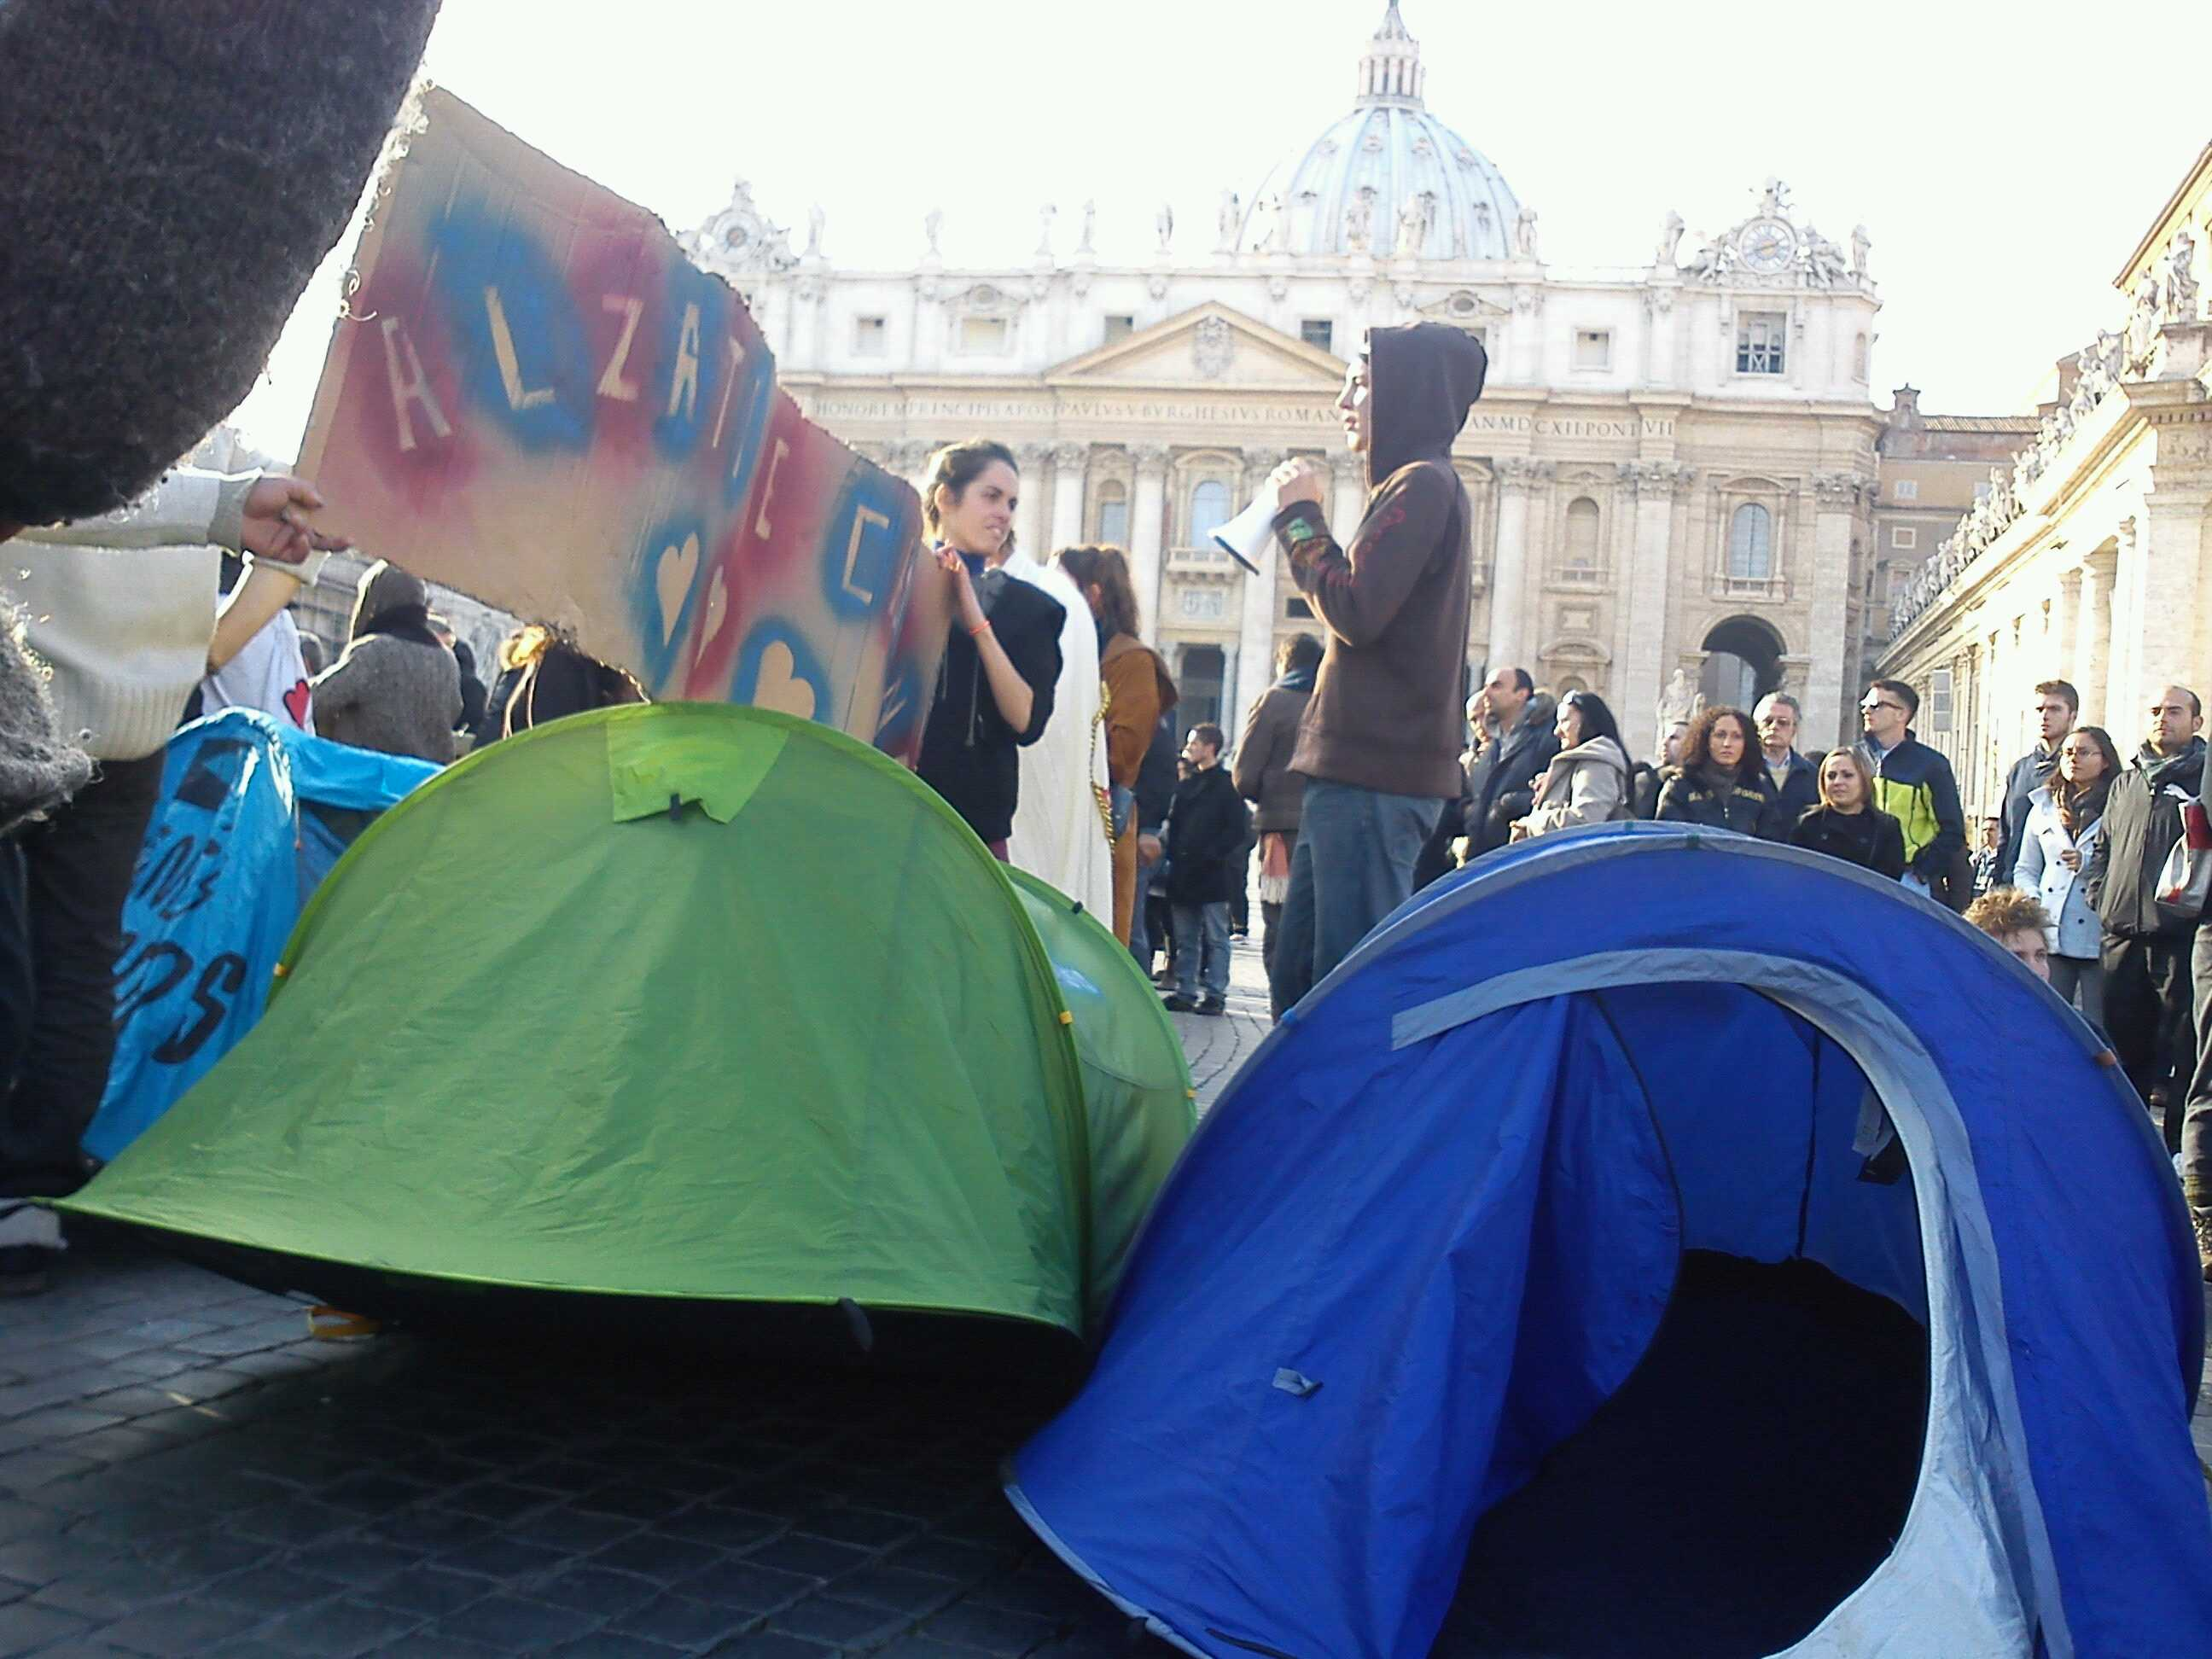 #Agoraroma International Communicate Part.2 #occupyVatican